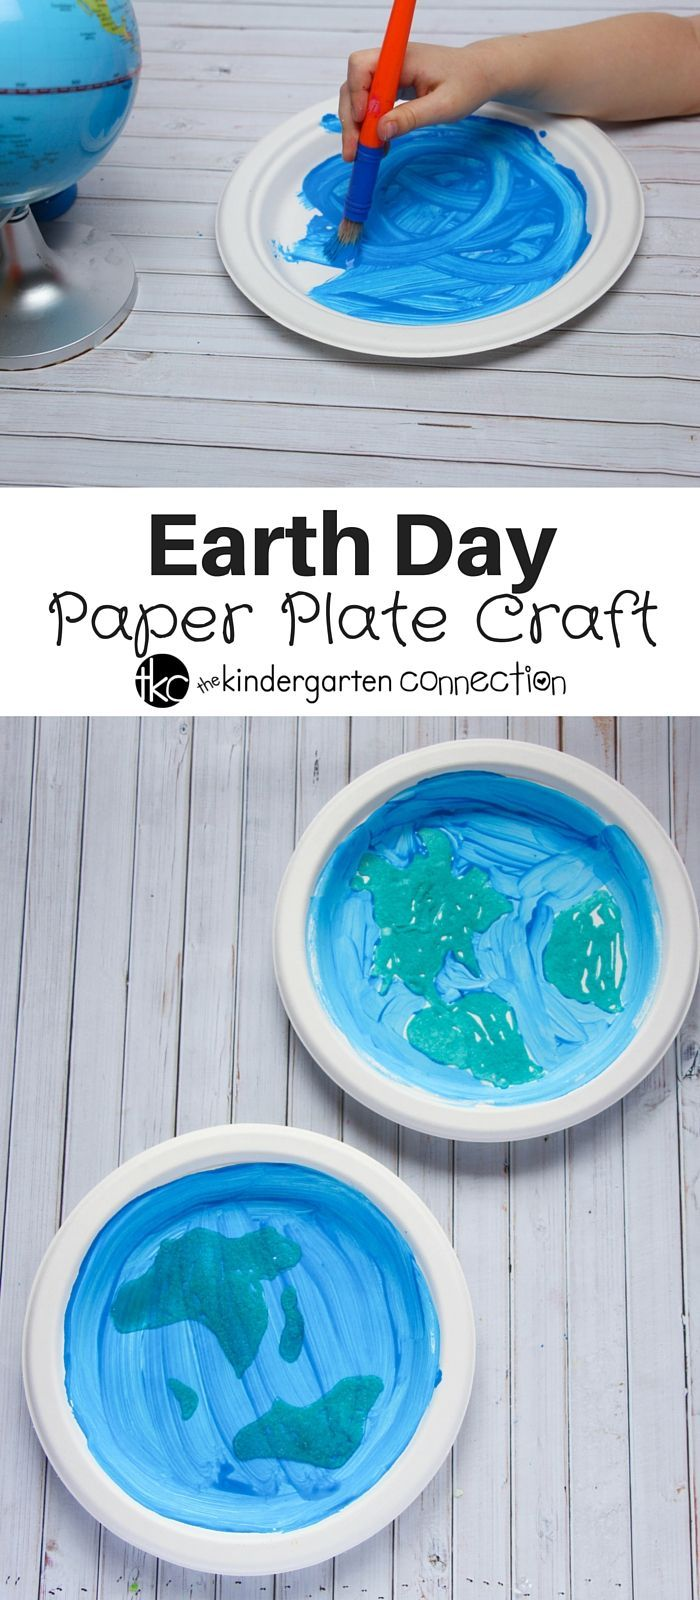 This paper plate craft is a fun, hands on way to celebrate Earth Day! Simple to make, and great to tie into your Earth Day activities for kids!